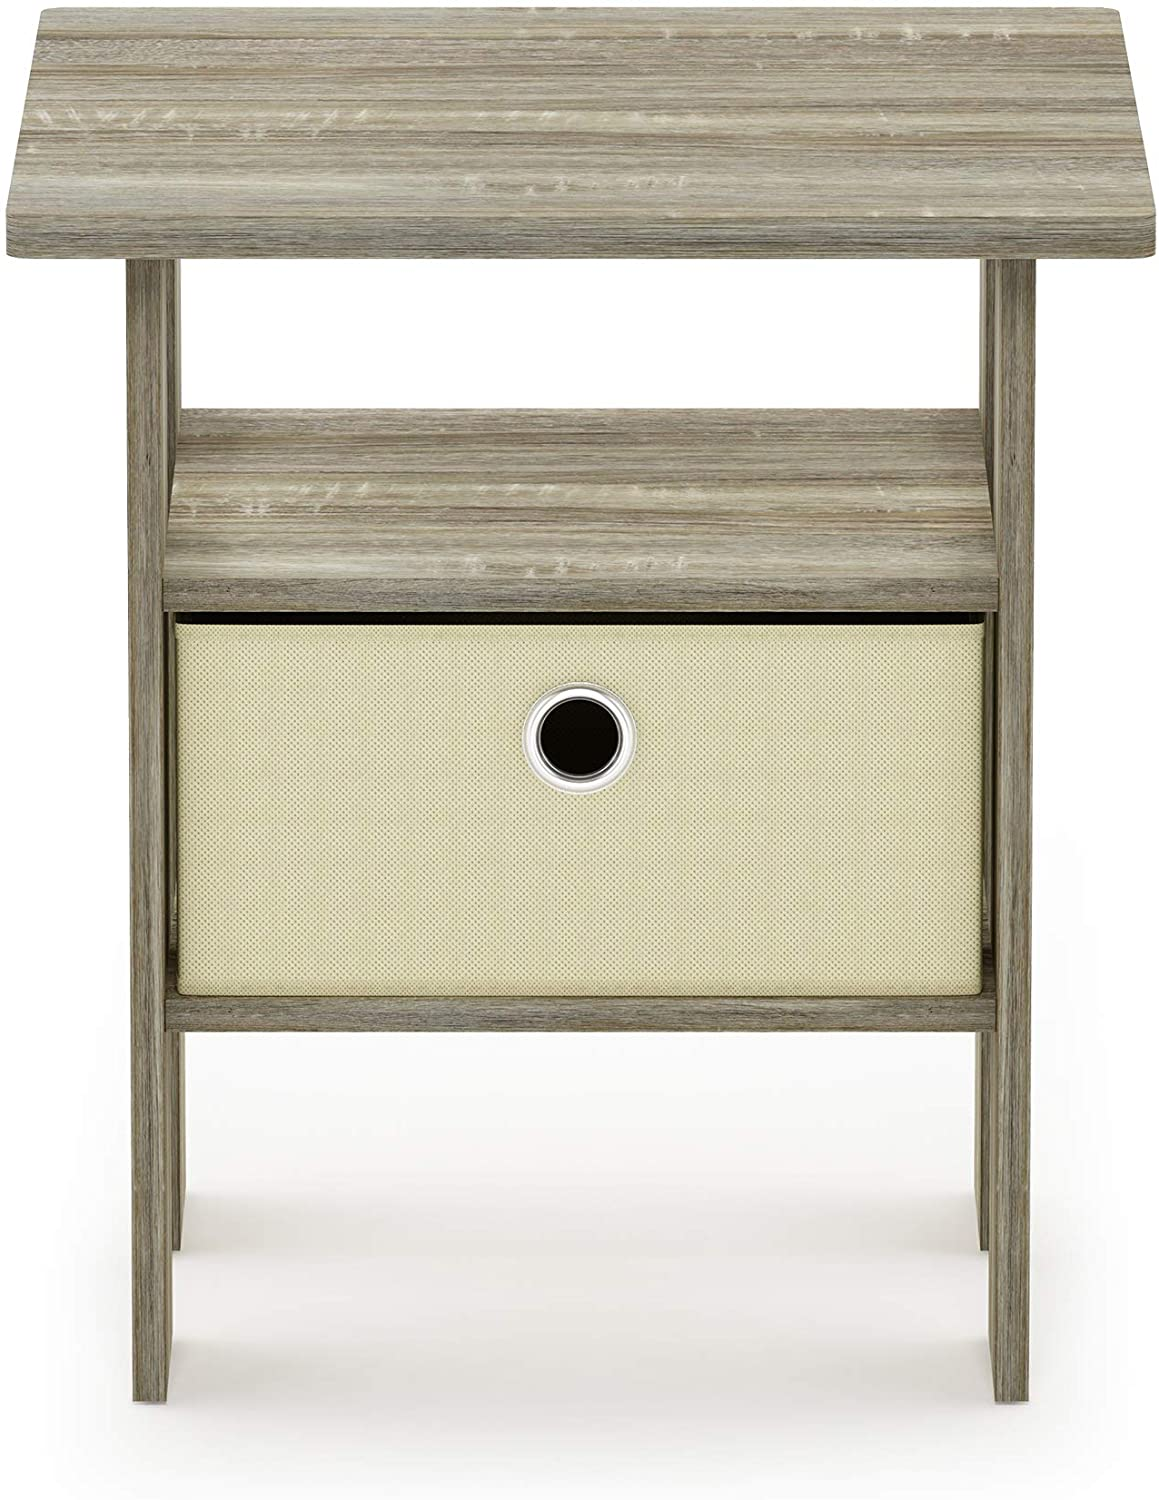 FURINNO Andrey End Table Nightstand with Bin Drawer, 1-Pack, Sonoma Oak/Ivory: Kitchen & Dining